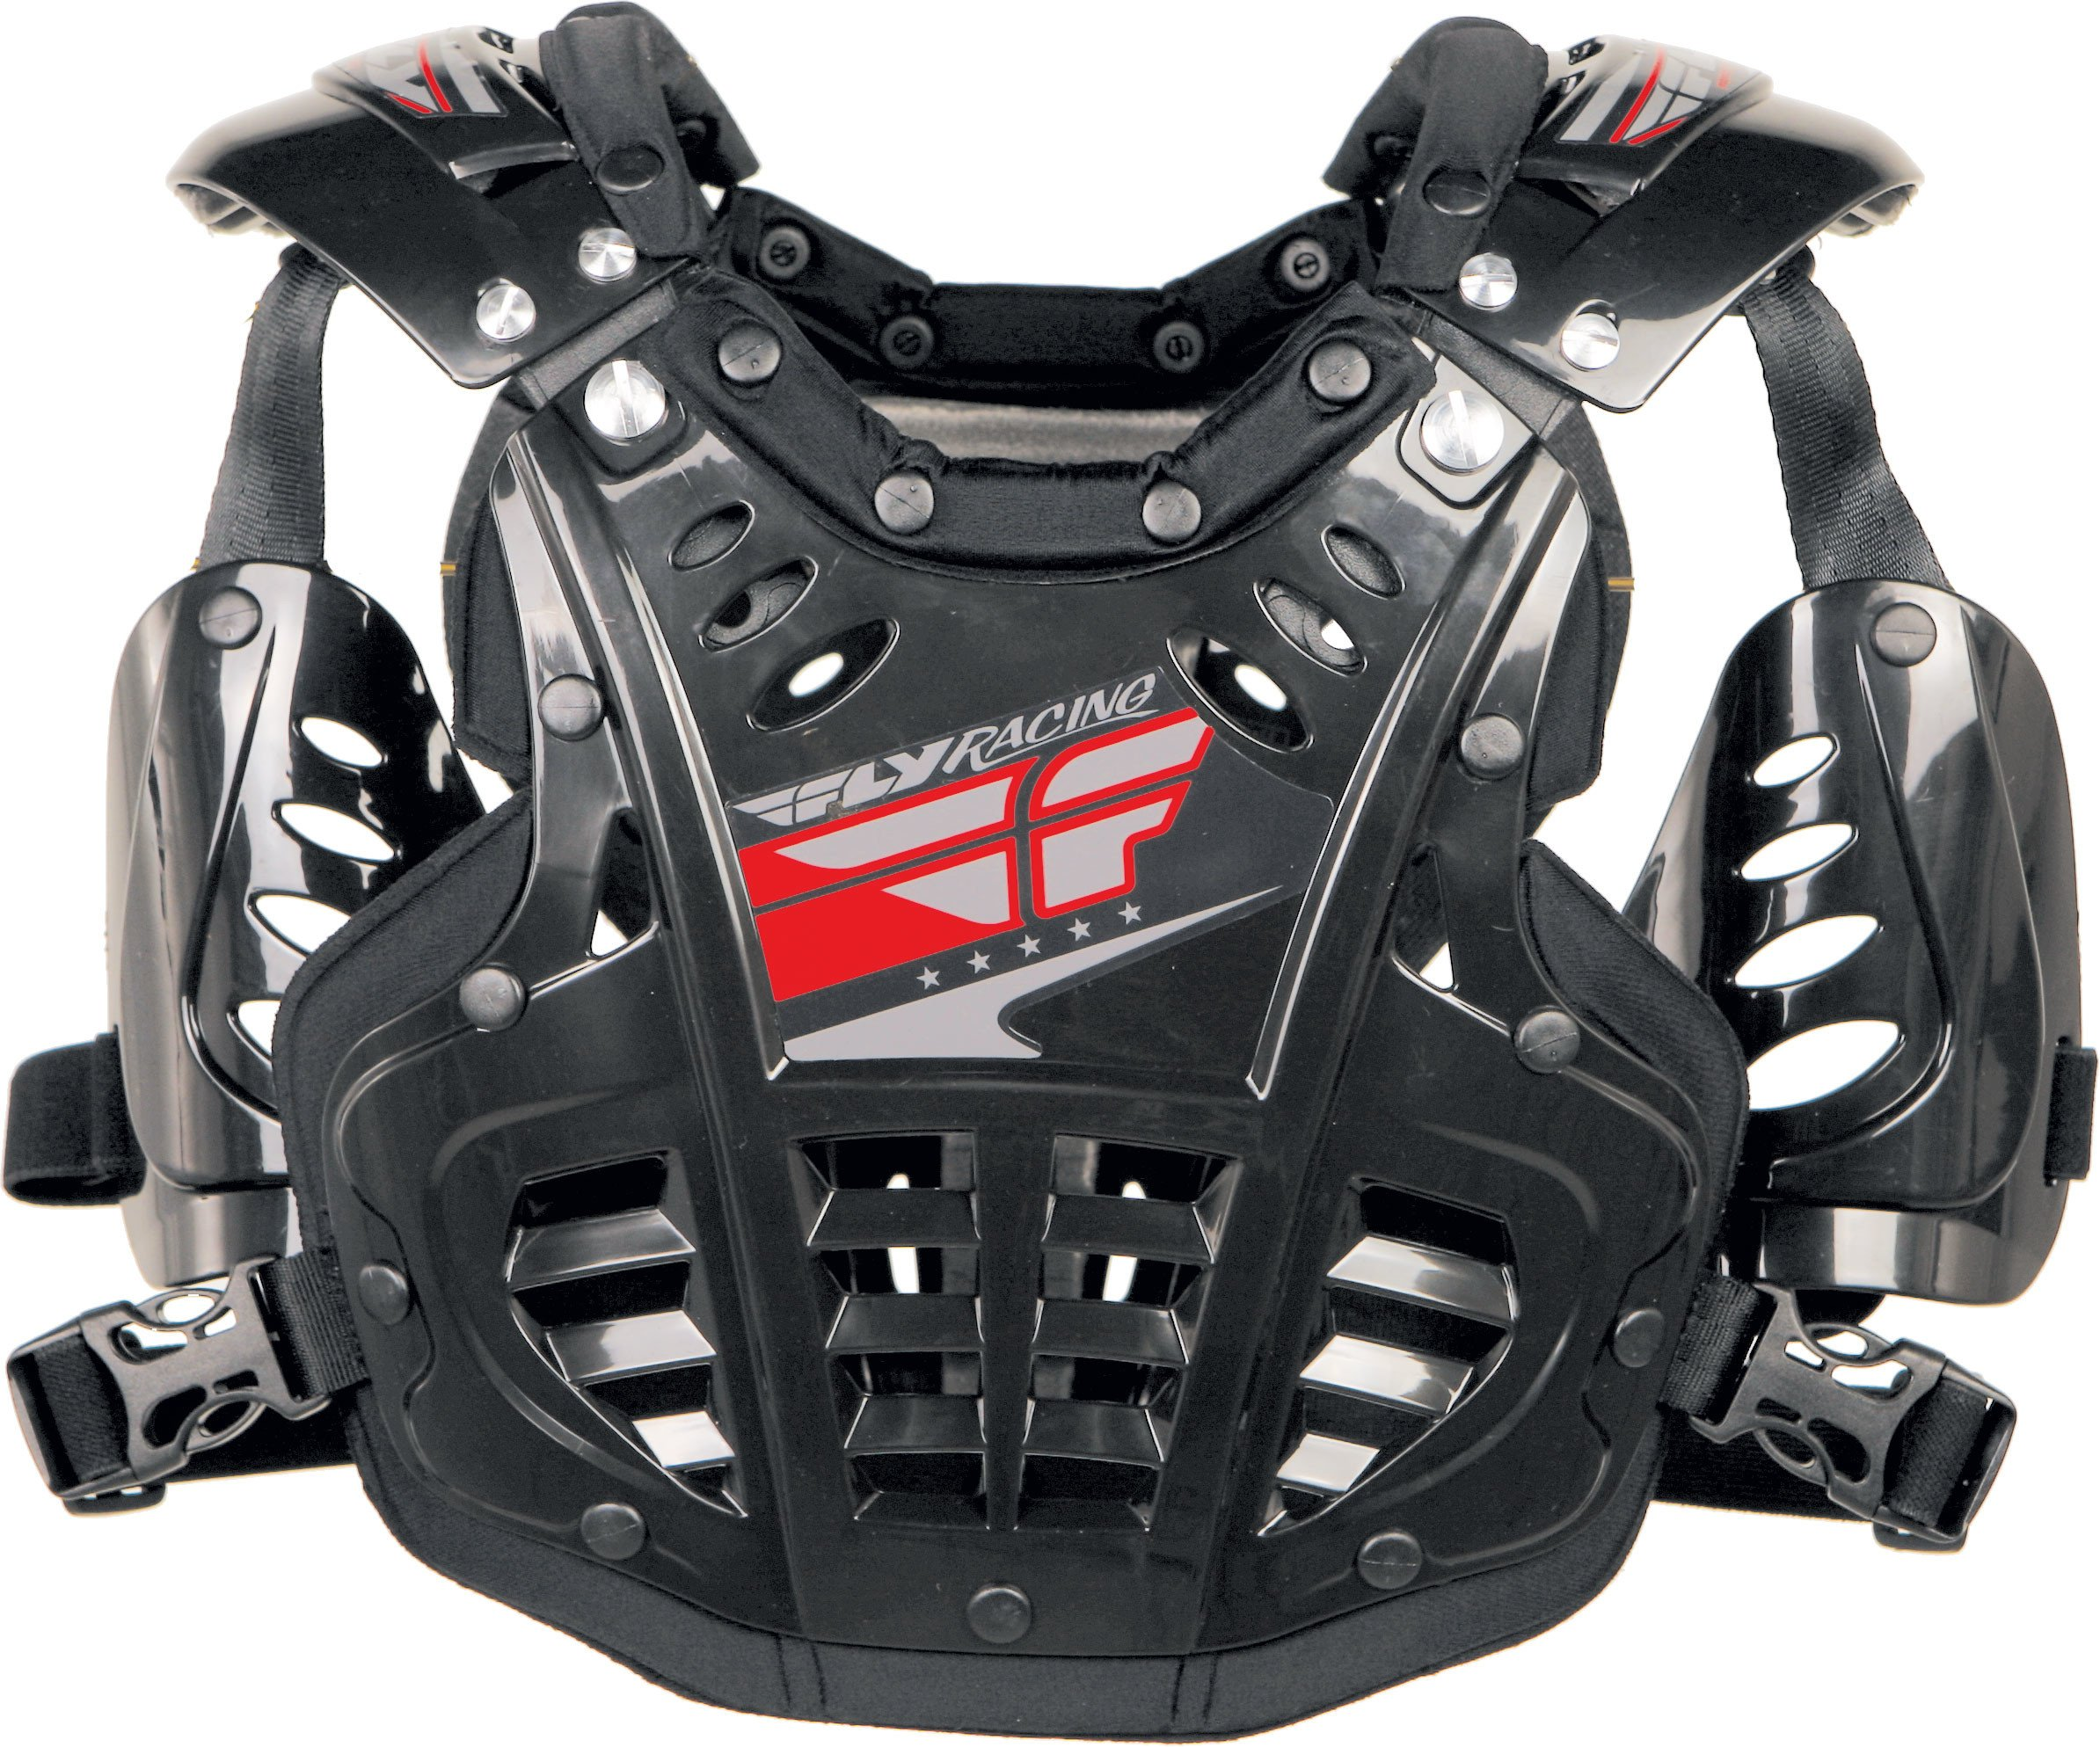 Fly Racing Polisport Fly Racing Convertible II Protective Mini Gear , Distinct Name: Black, Size Segment: Youth, Size Modifier: 40-80lbs, Primary Color: Black, Size: OSFM, Gender: Boys by Fly Racing (Image #1)